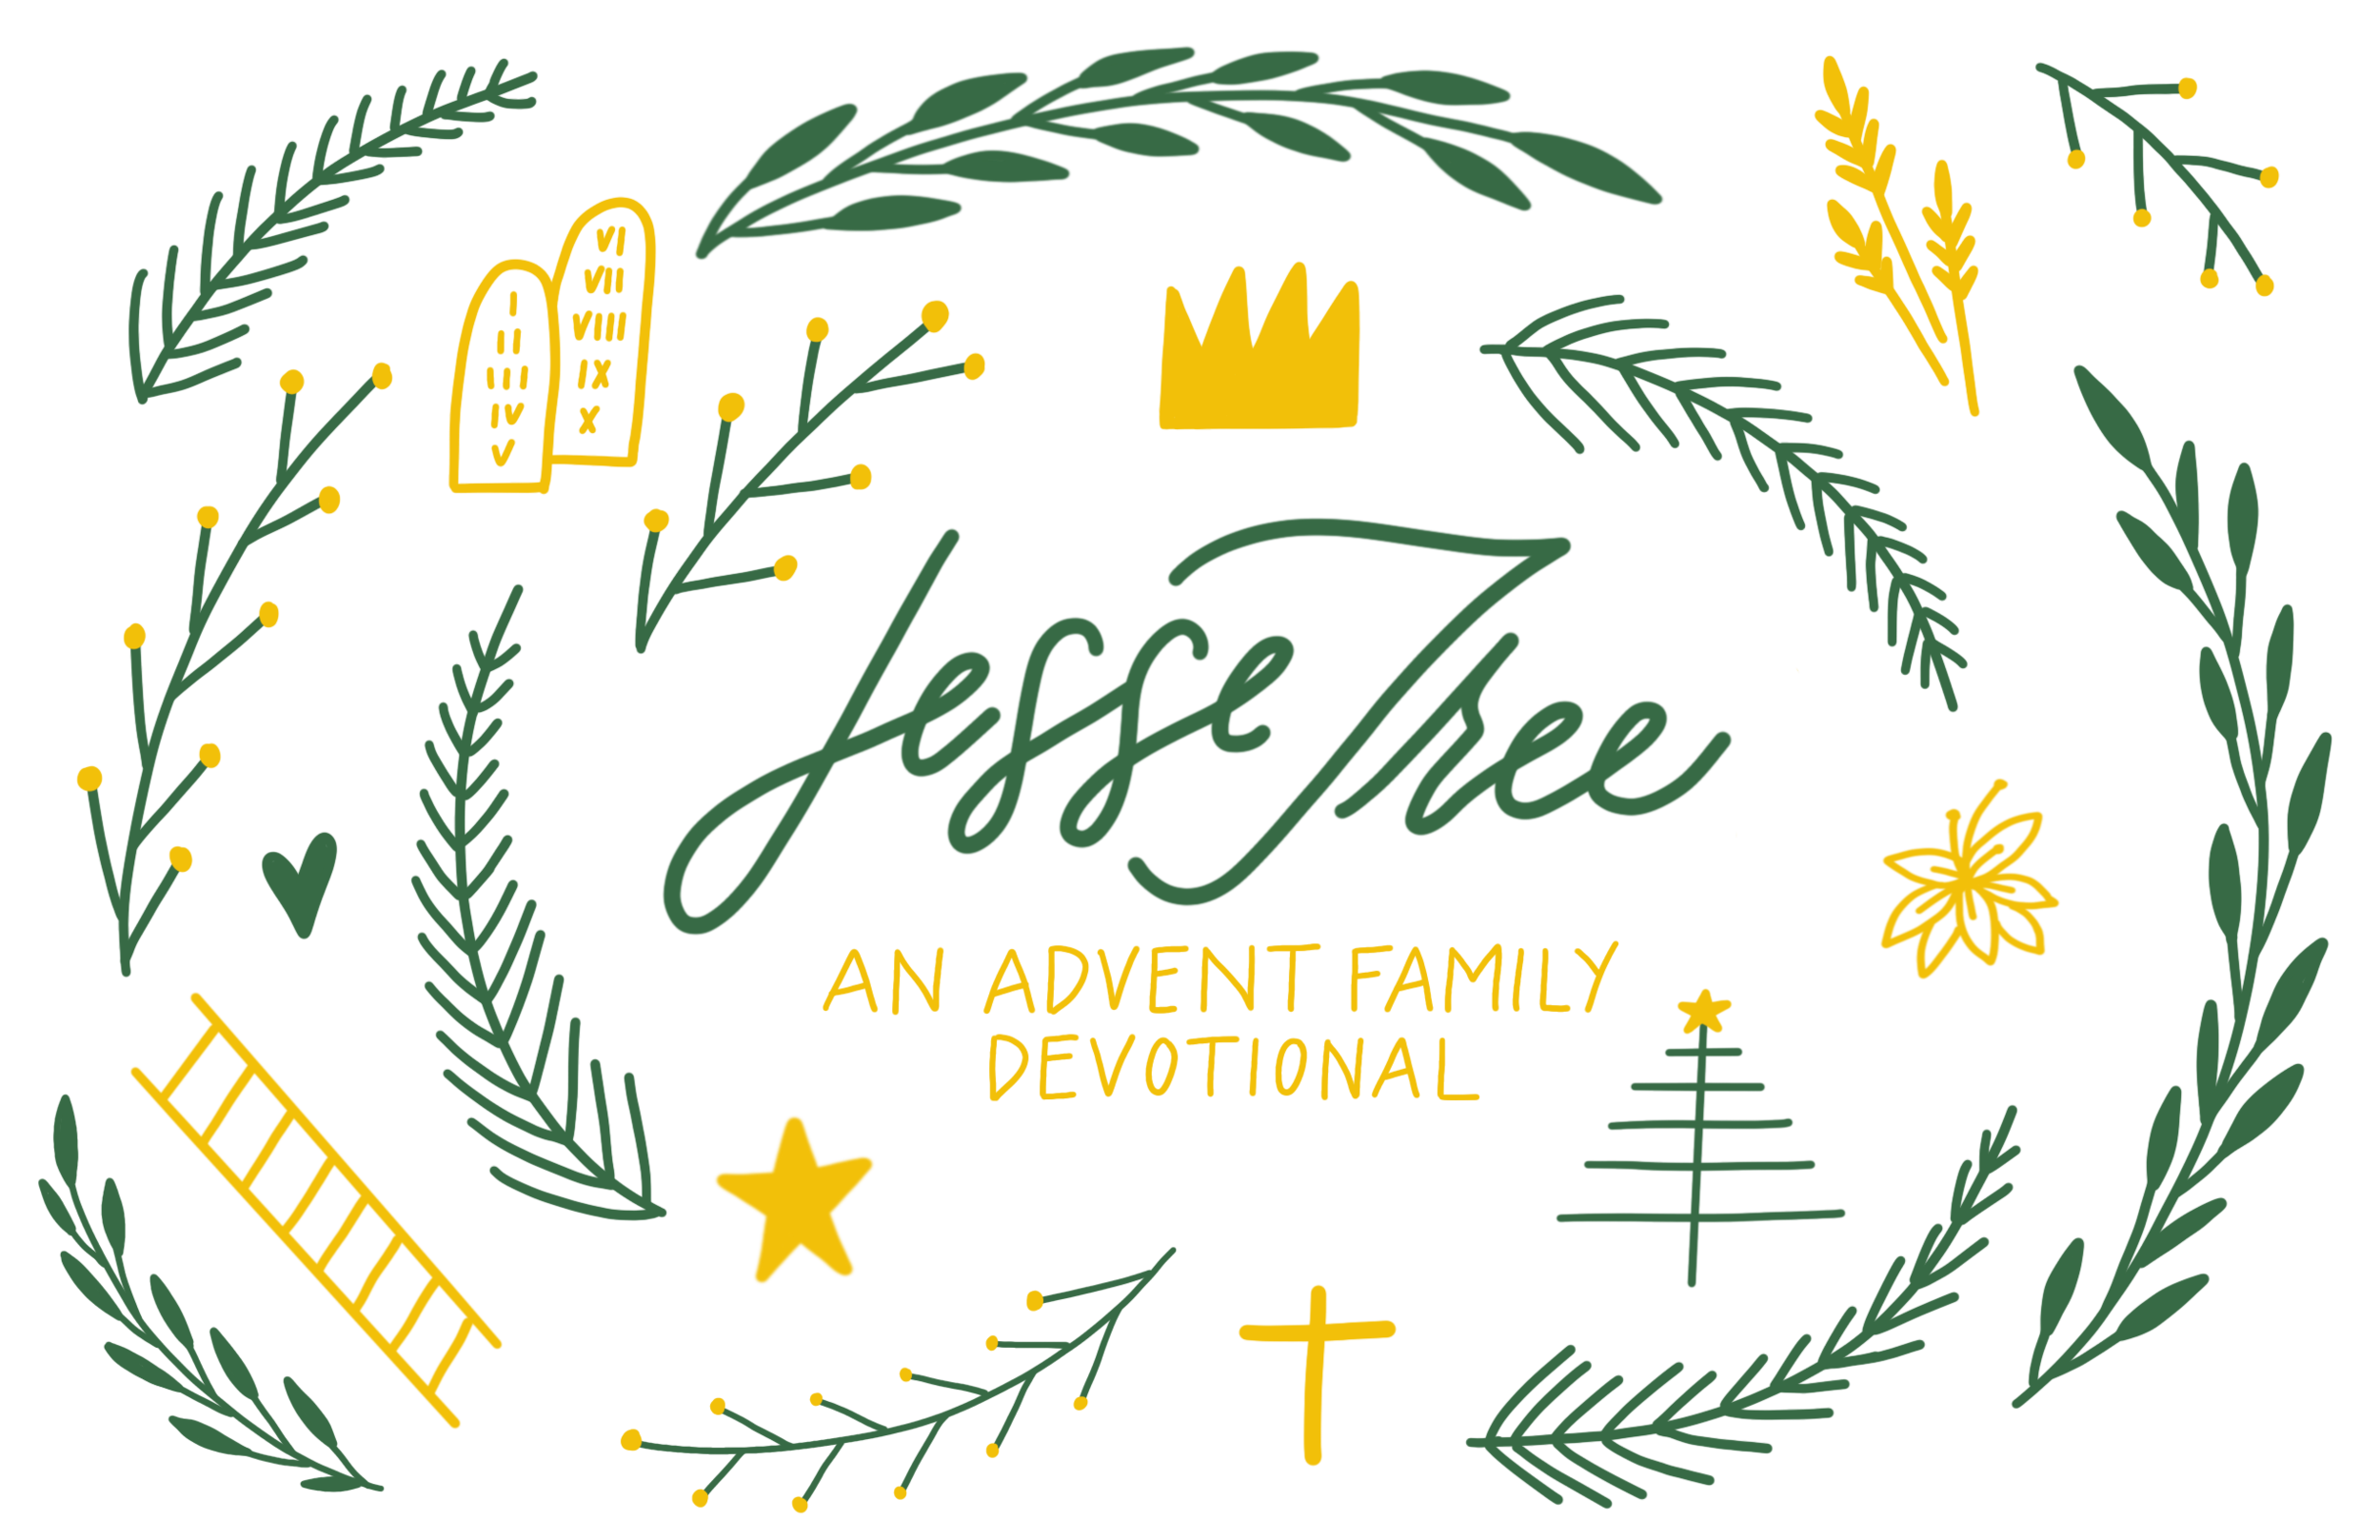 graphic about Jesse Tree Symbols Printable named The Jesse Tree and Other Arrival Elements Gospel Based